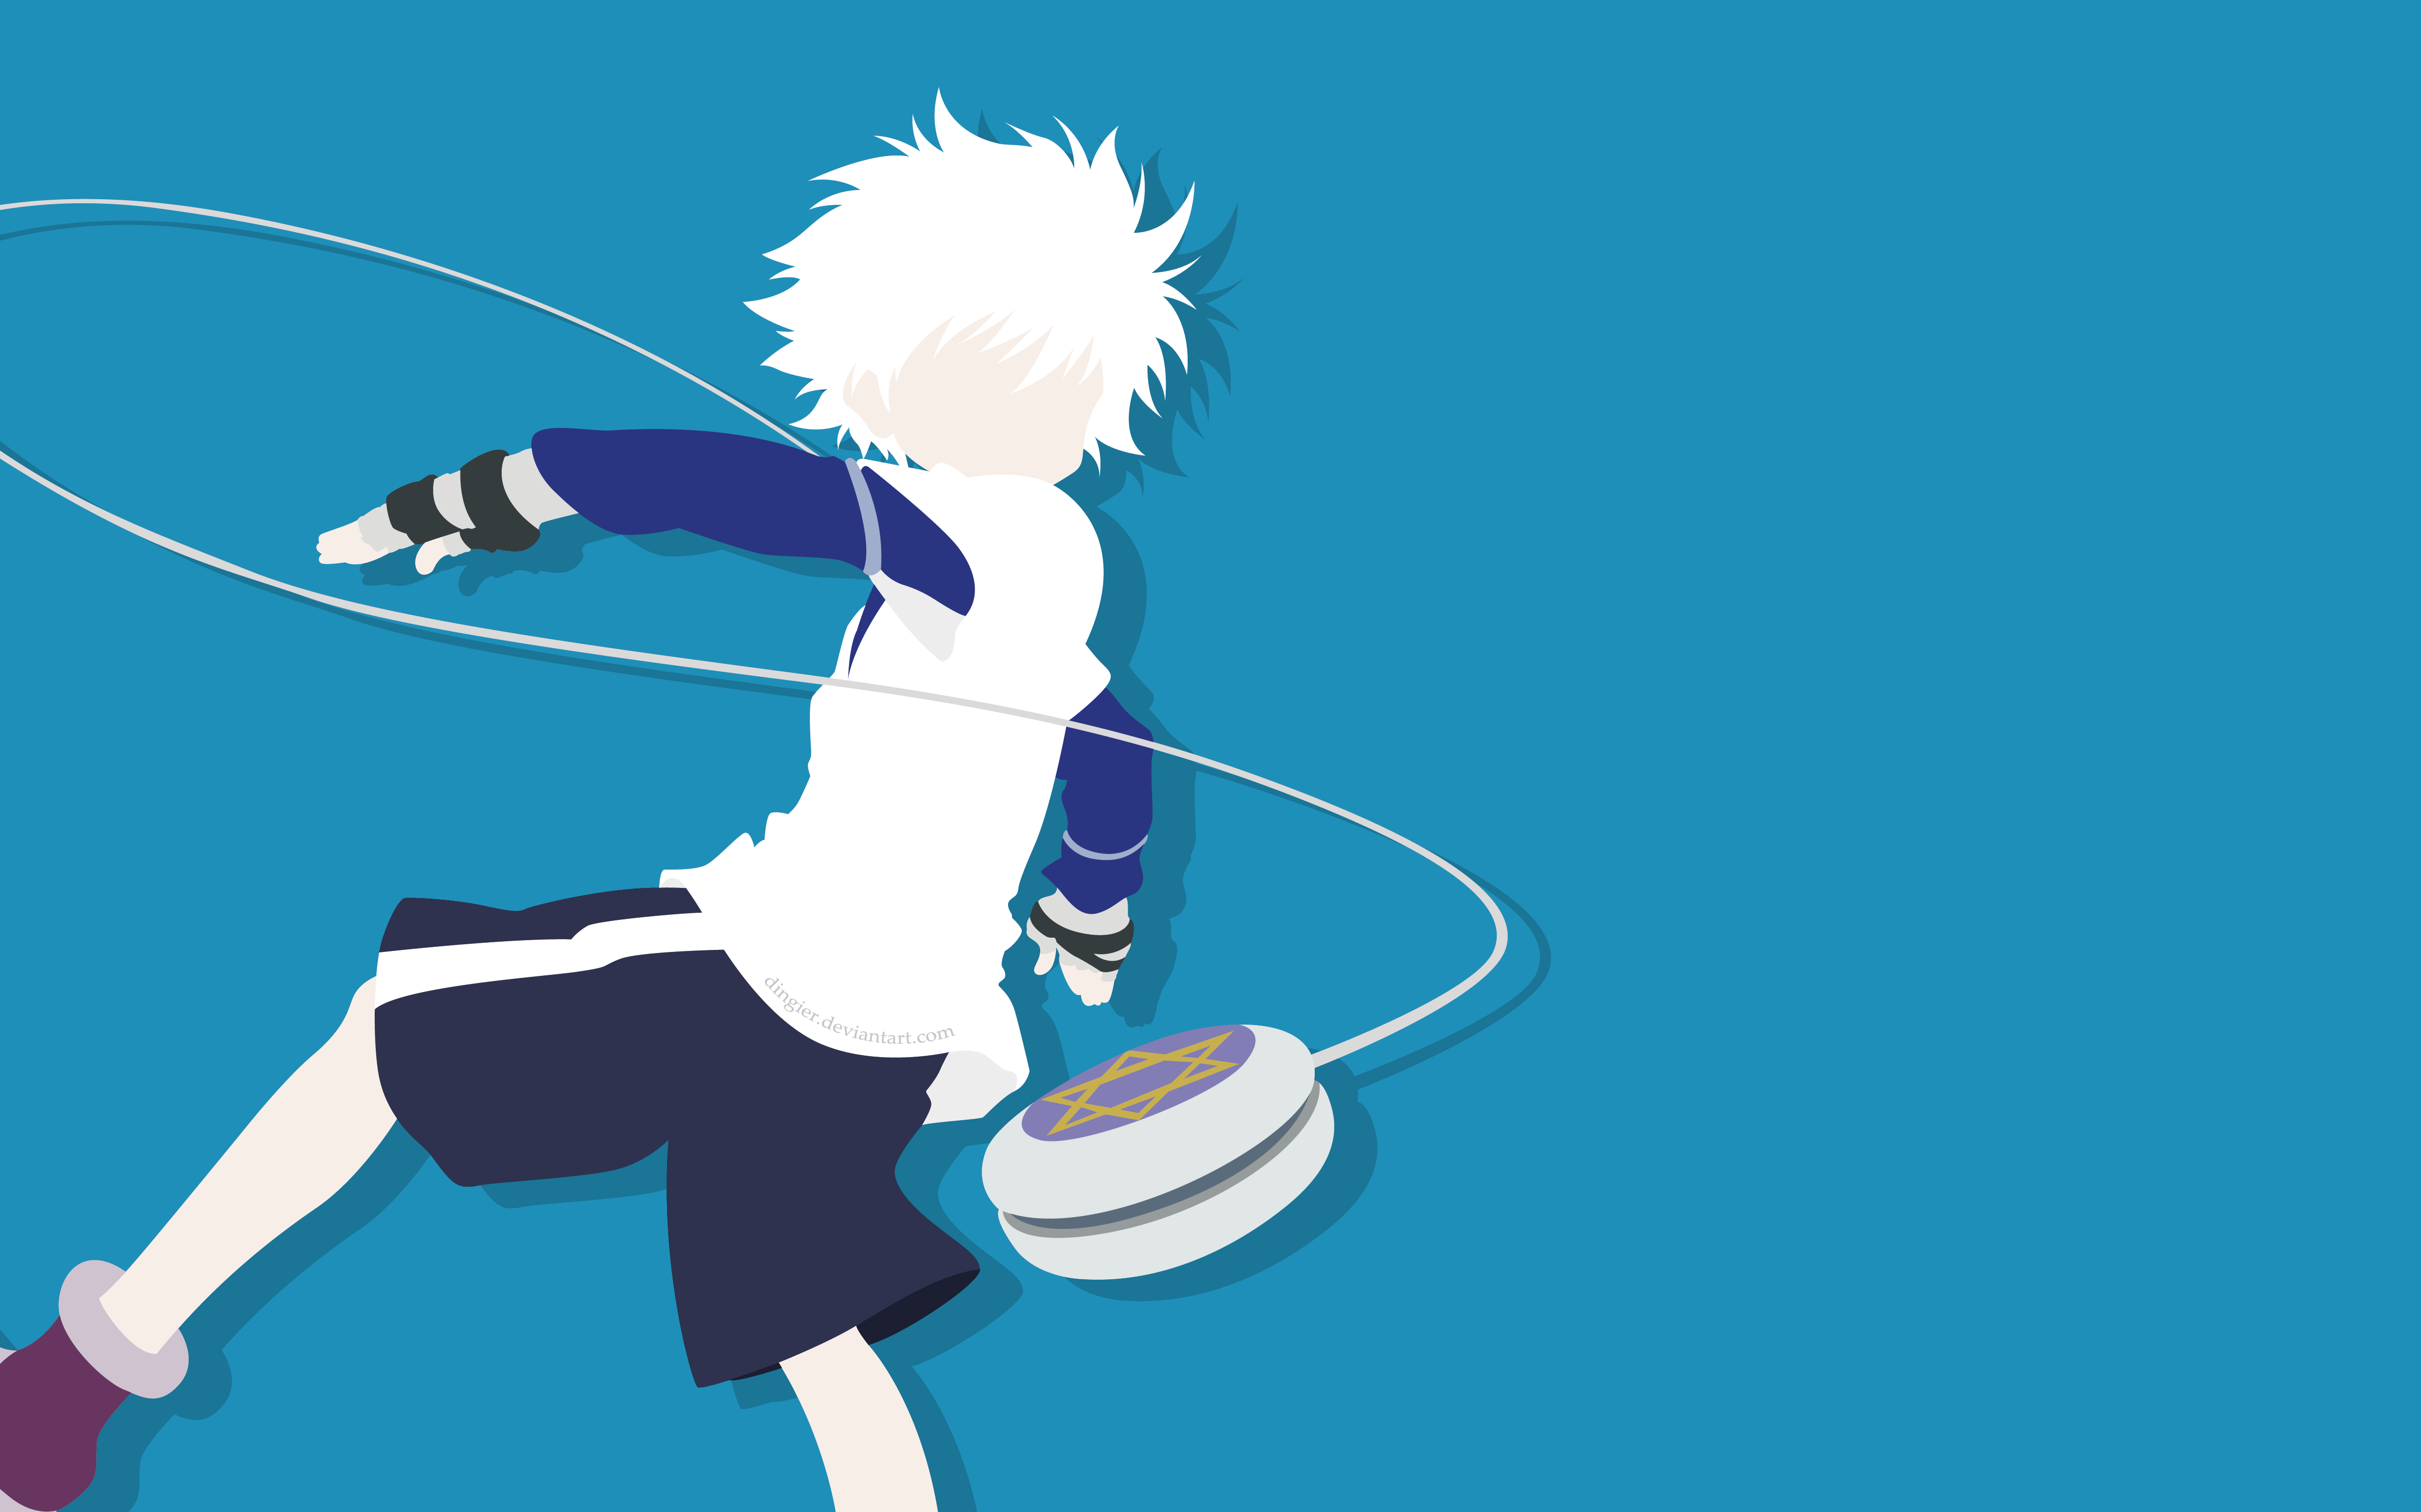 Can you pass the hunter examination within? Hunter x Hunter 4k Ultra HD Wallpaper | Background Image ...